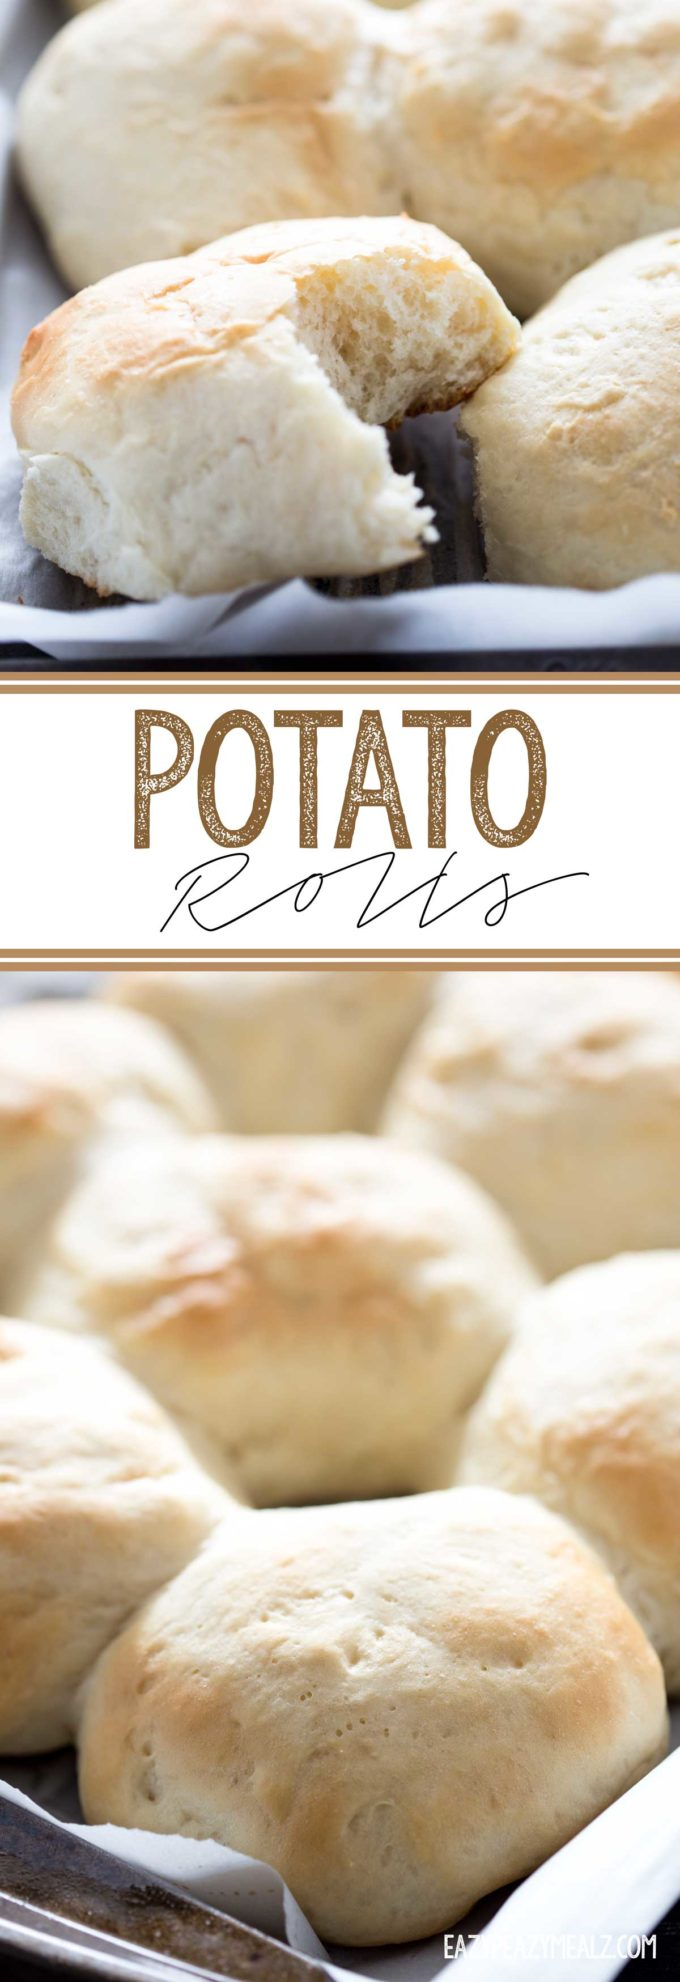 Soft, fluffy, and flavorful potato rolls made with mashed potatoes!